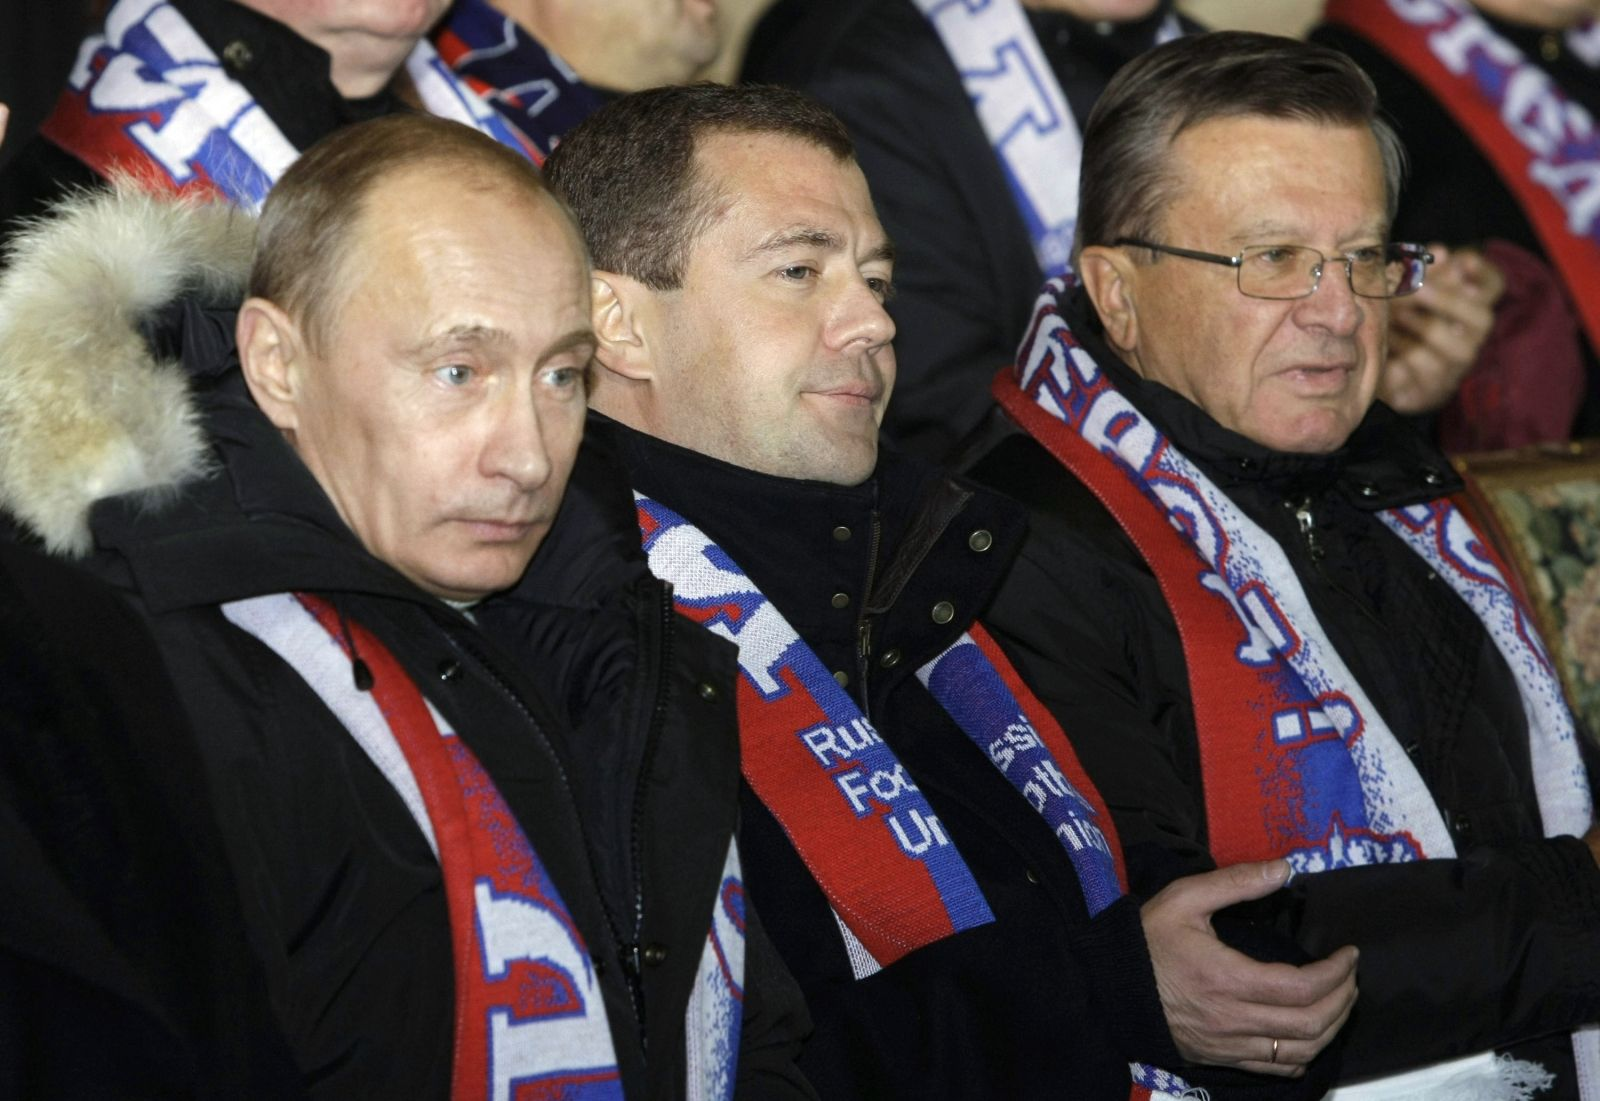 Russians indifferent to football